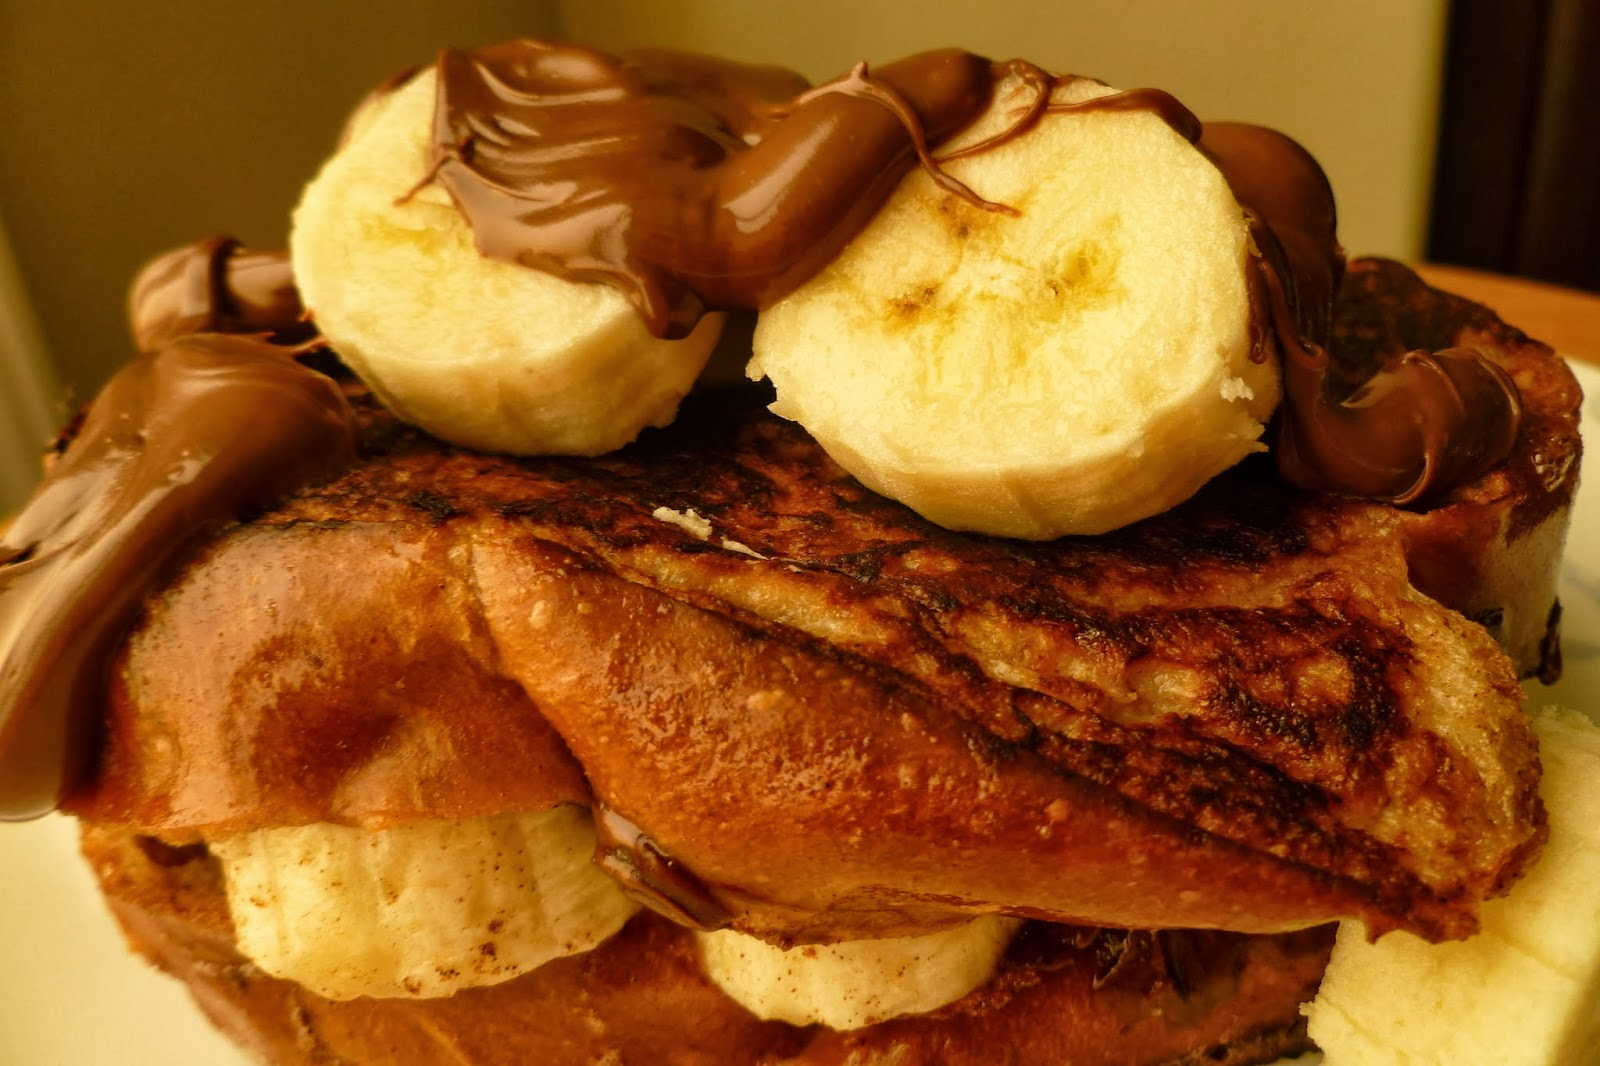 The Pastry Chef's Baking: Banana and Nutella Stuffed ...